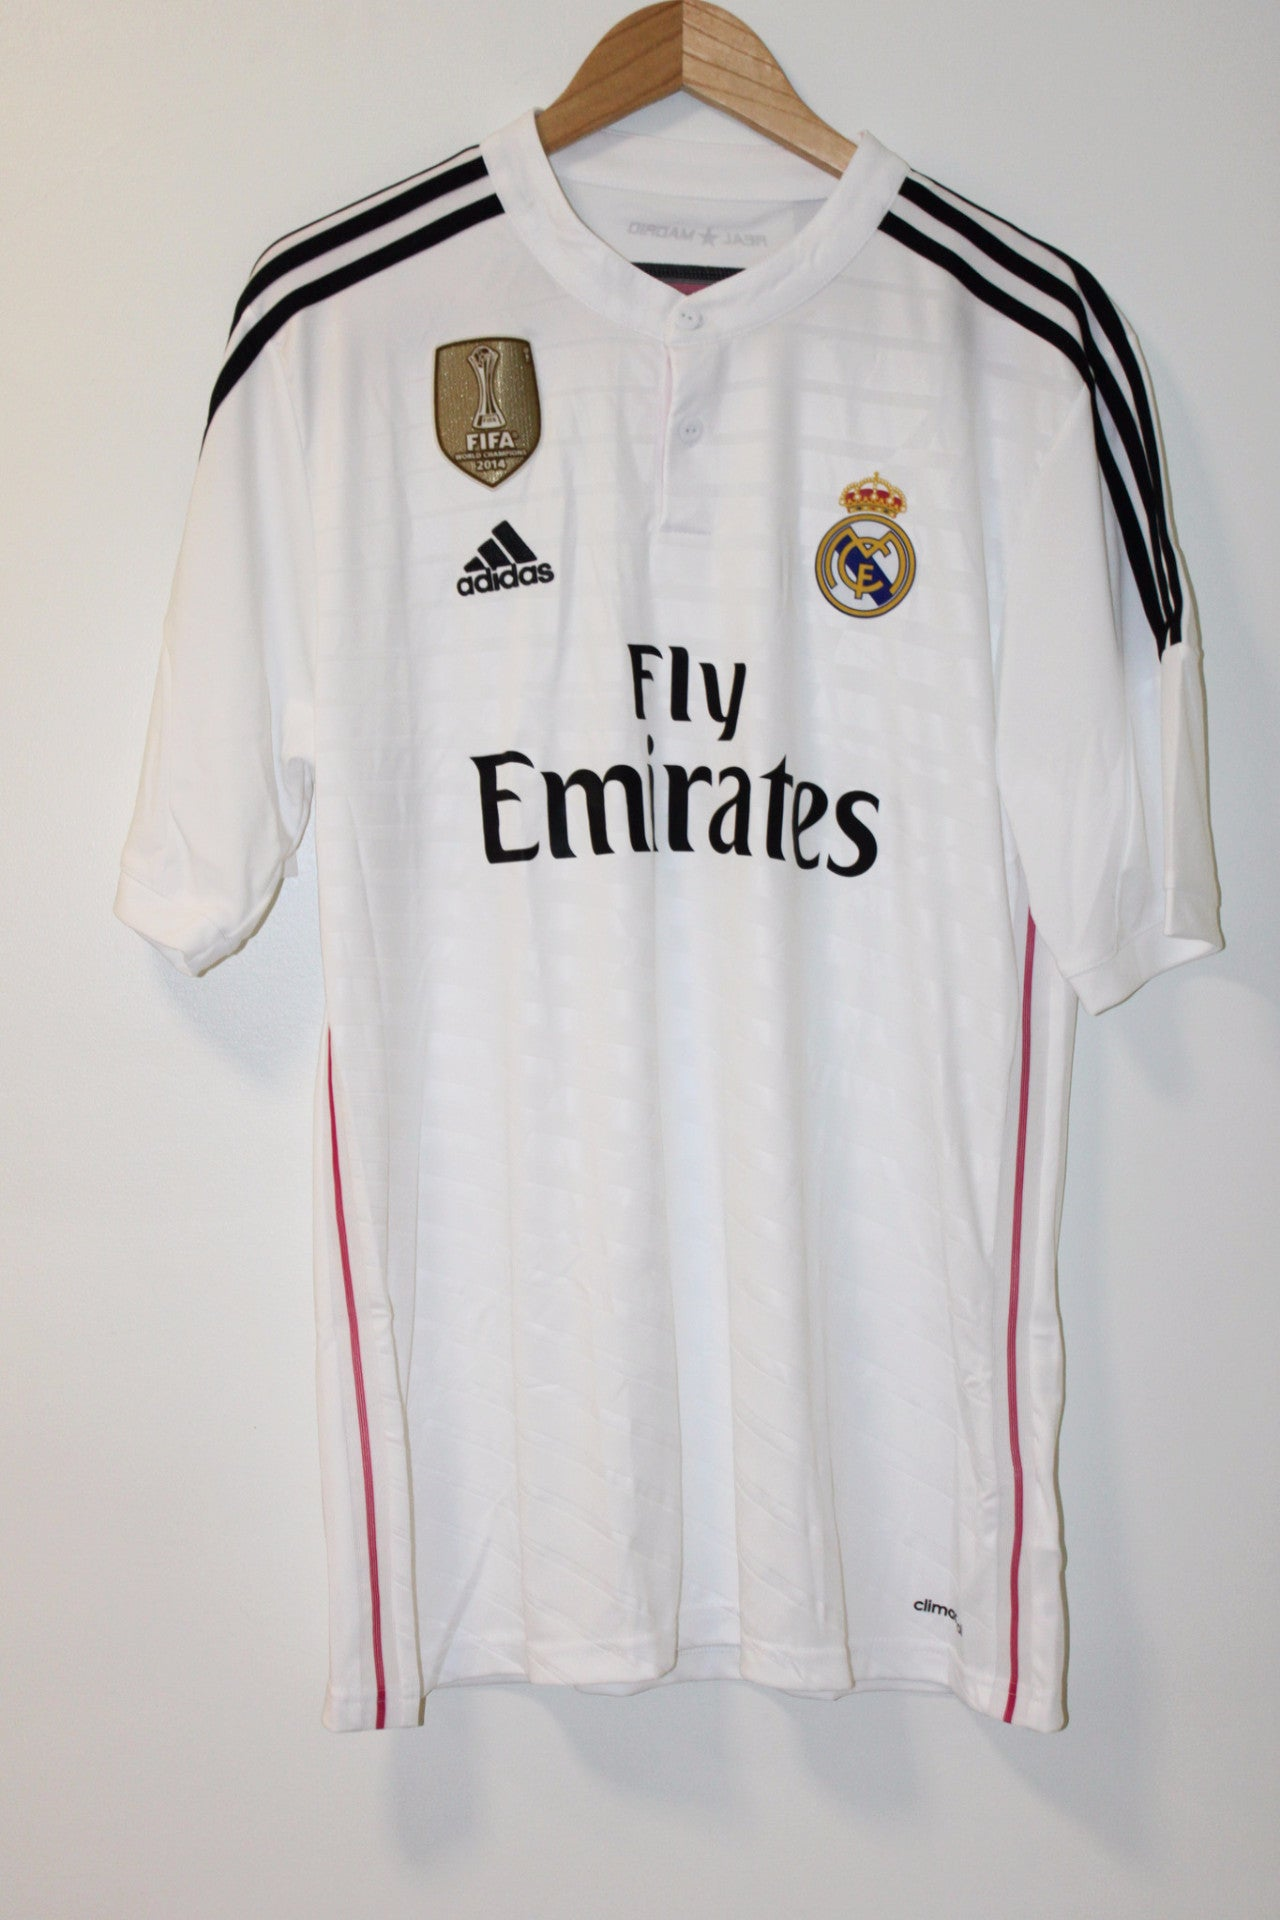 Real Madrid 2014-2015 Home Shirt Adidas BNWT